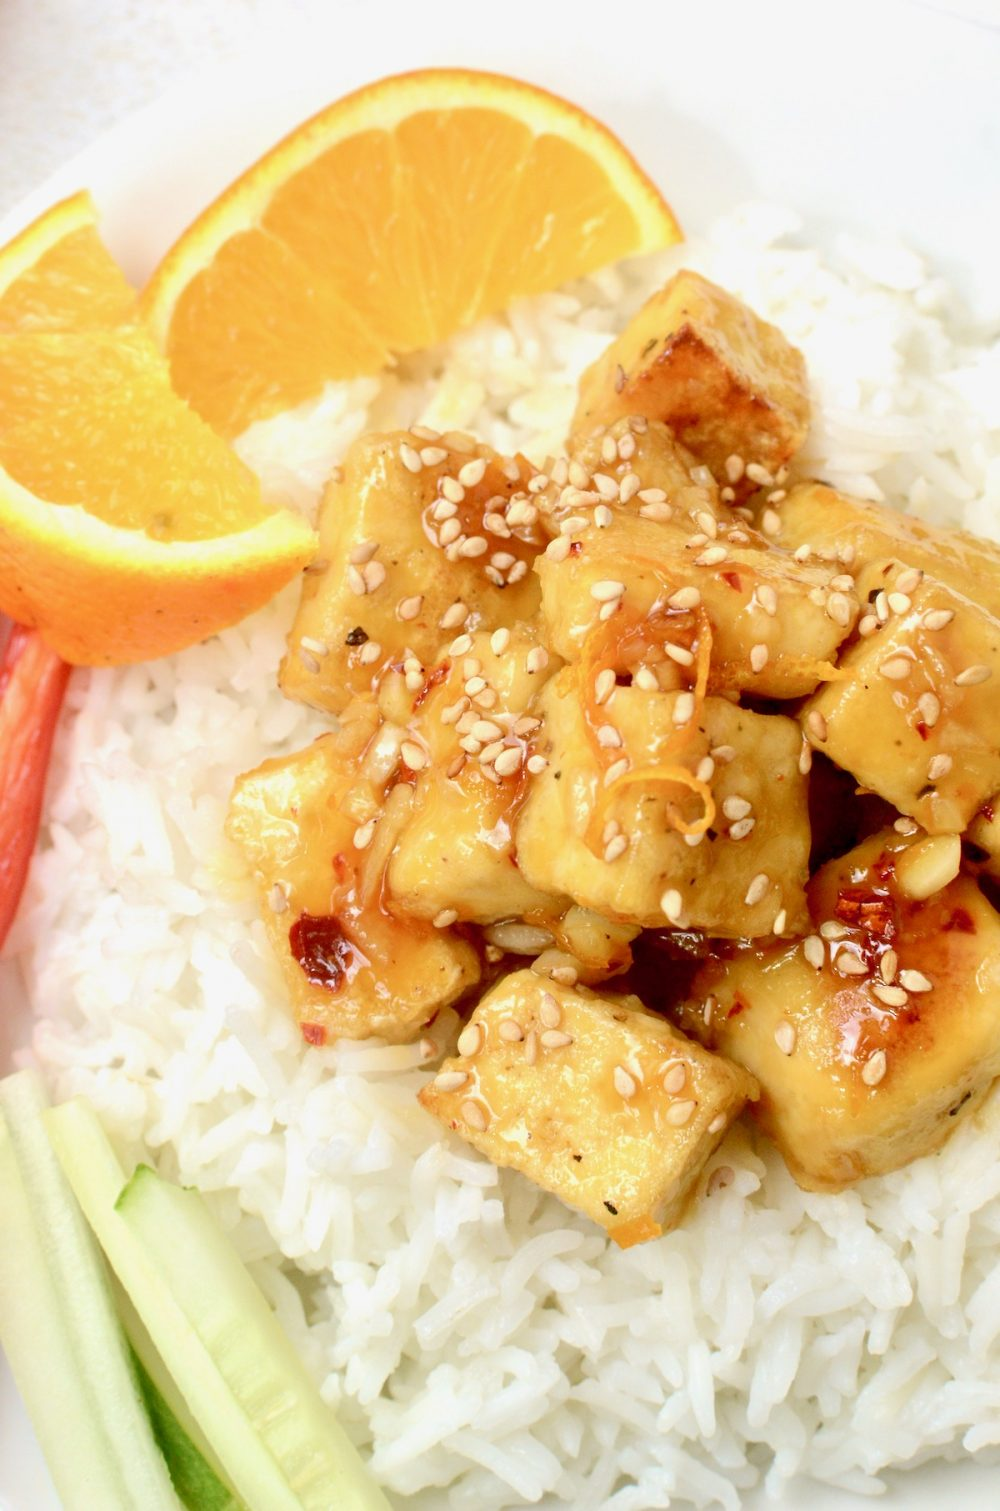 A close up shot of orange tofu sprinkled with toasted sesame seeds, served on white rice and with a wedge of fresh orange and raw vegetables.